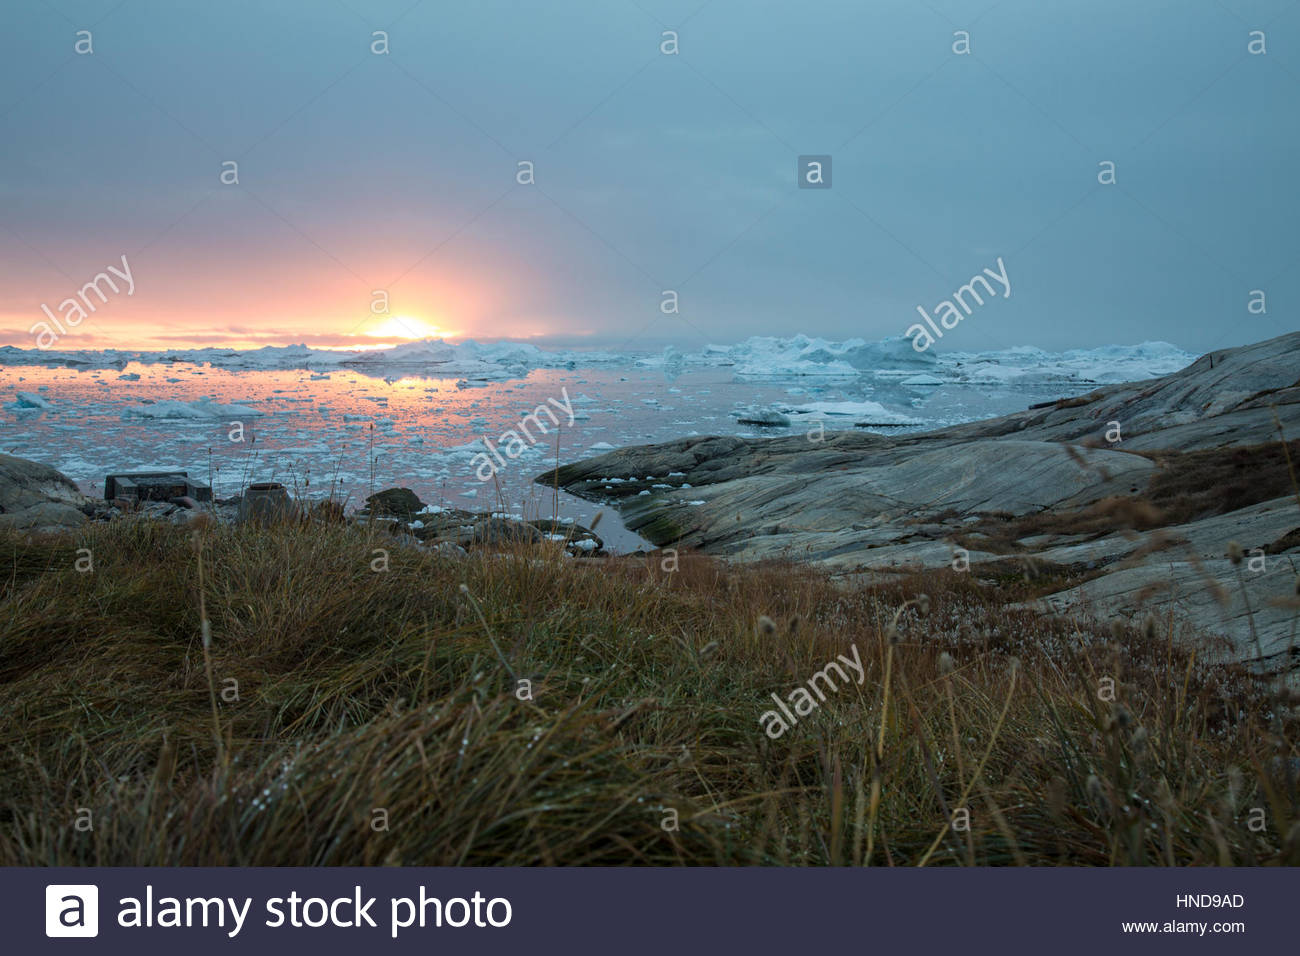 Greenland Sunset from the Icefjord - Stock Image